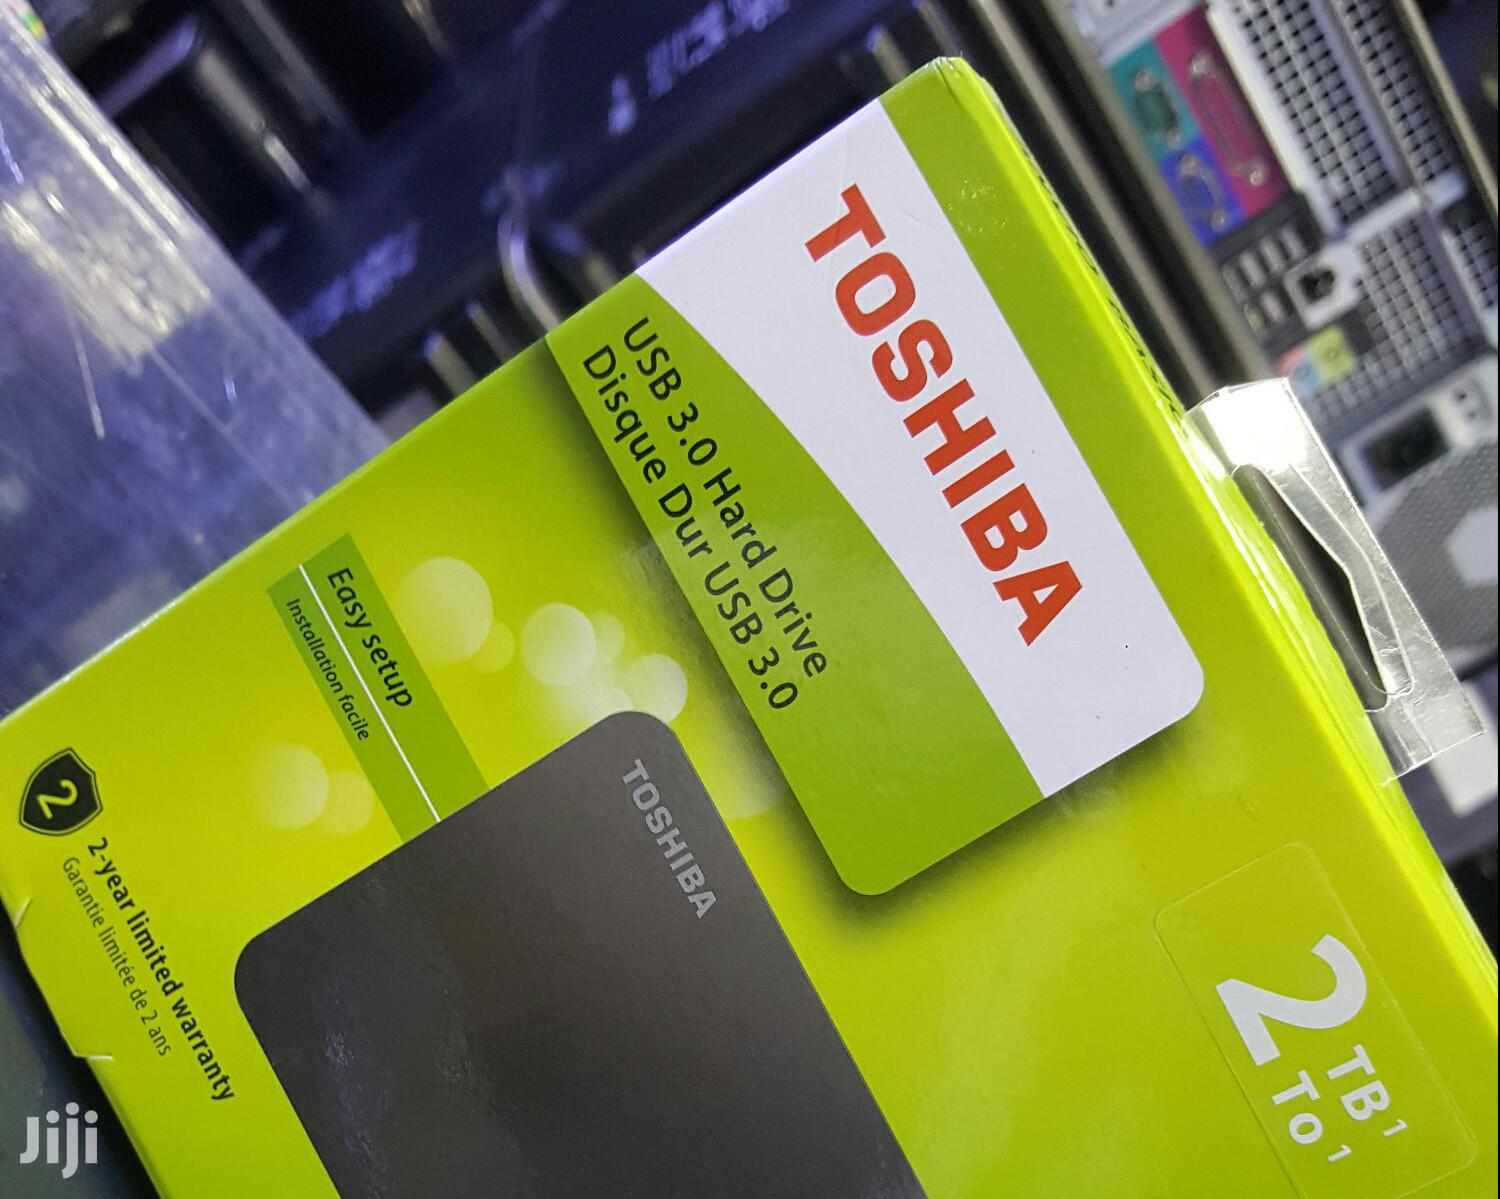 2tb Toshiba External Hard Drive | Computer Hardware for sale in Kampala, Central Region, Uganda